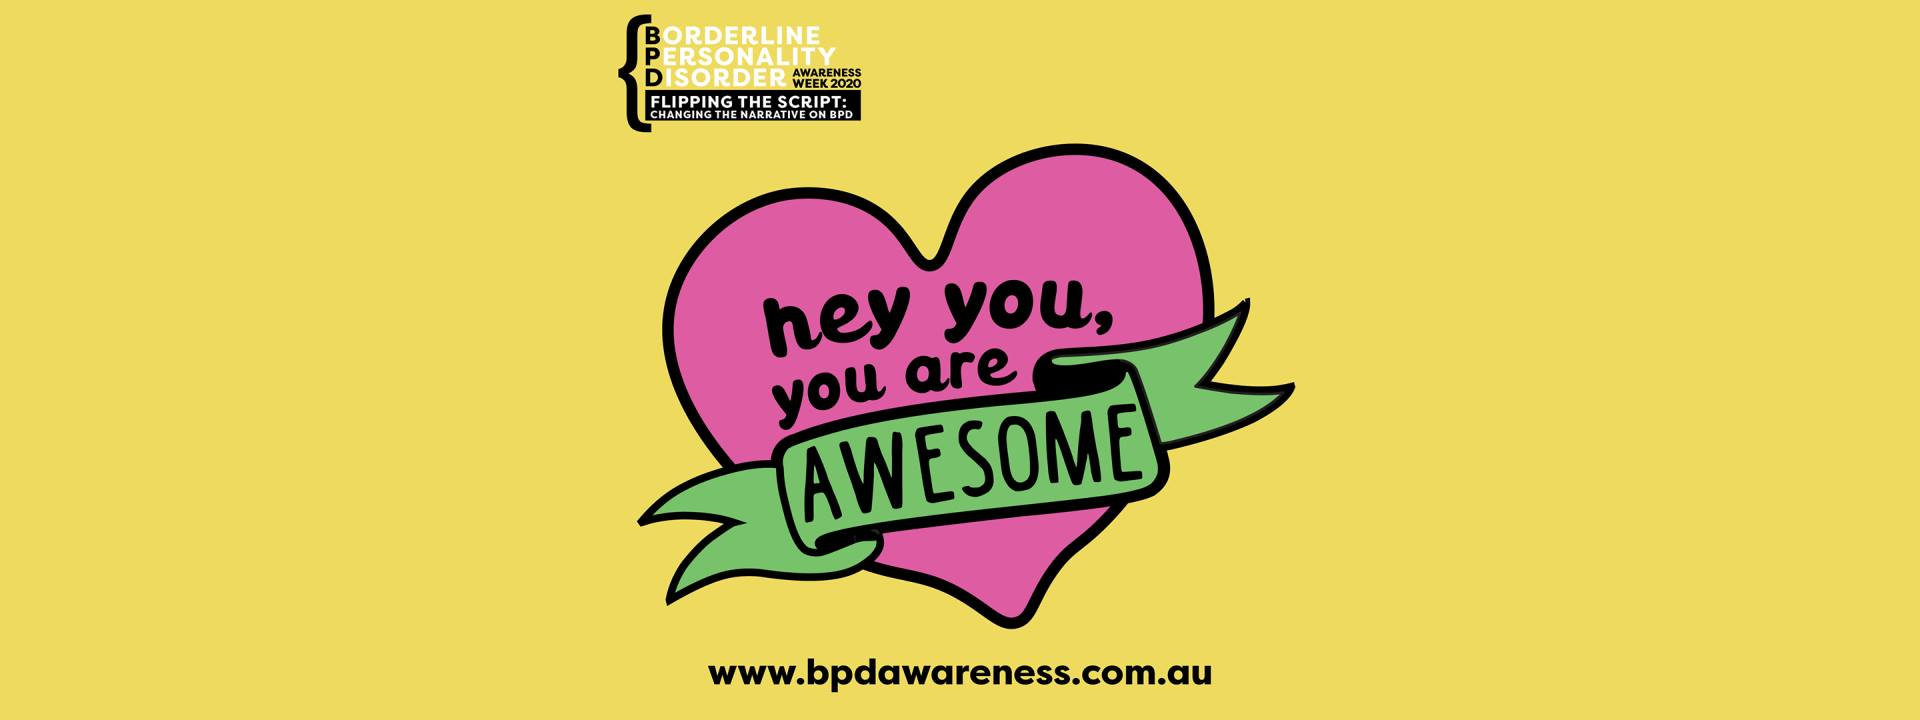 BPD Awareness Week 2020 - You are Awesome